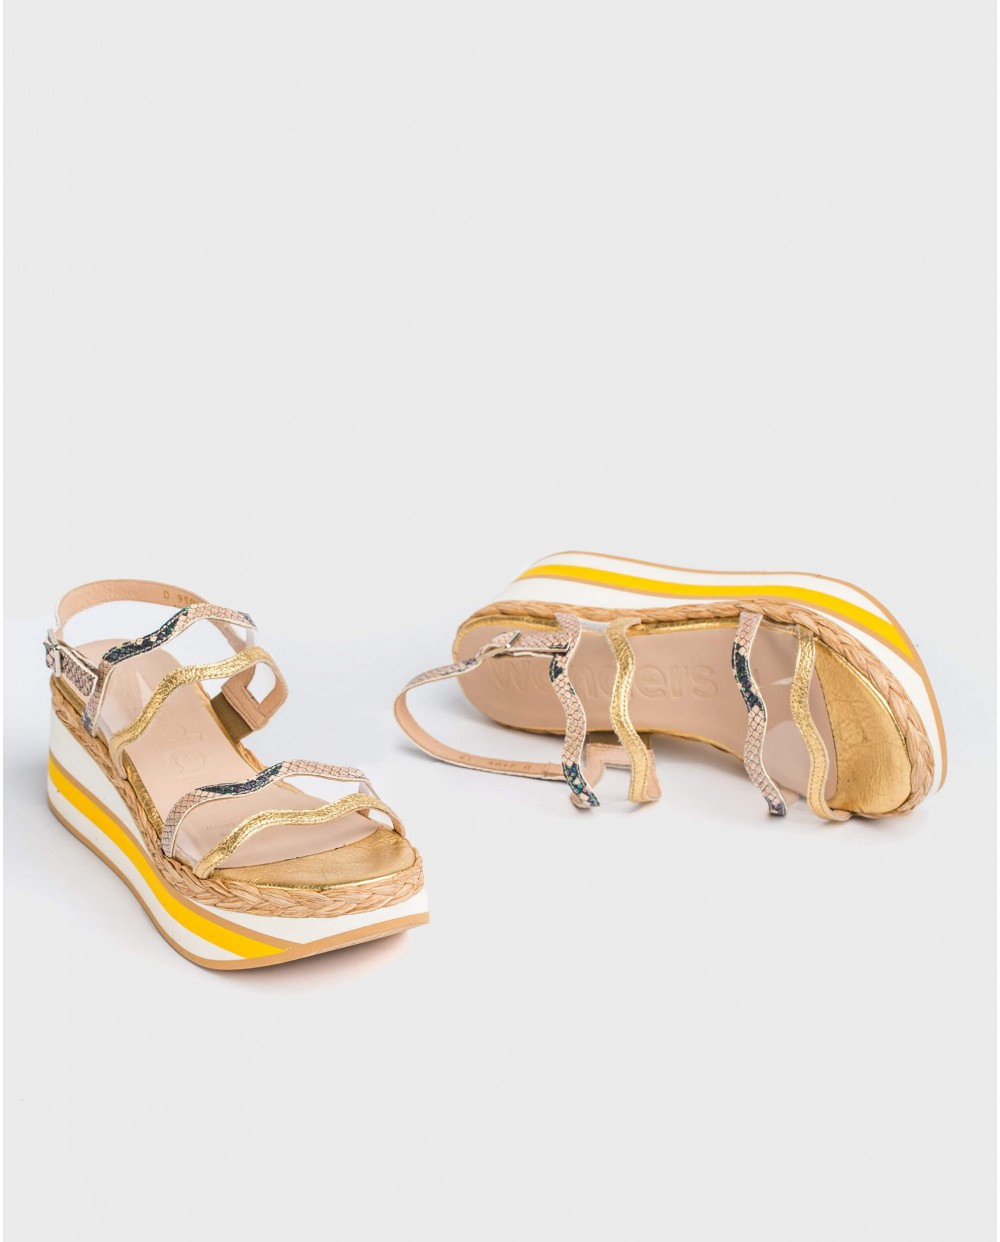 Wonders-Sandals-Sandal with vinyl strap